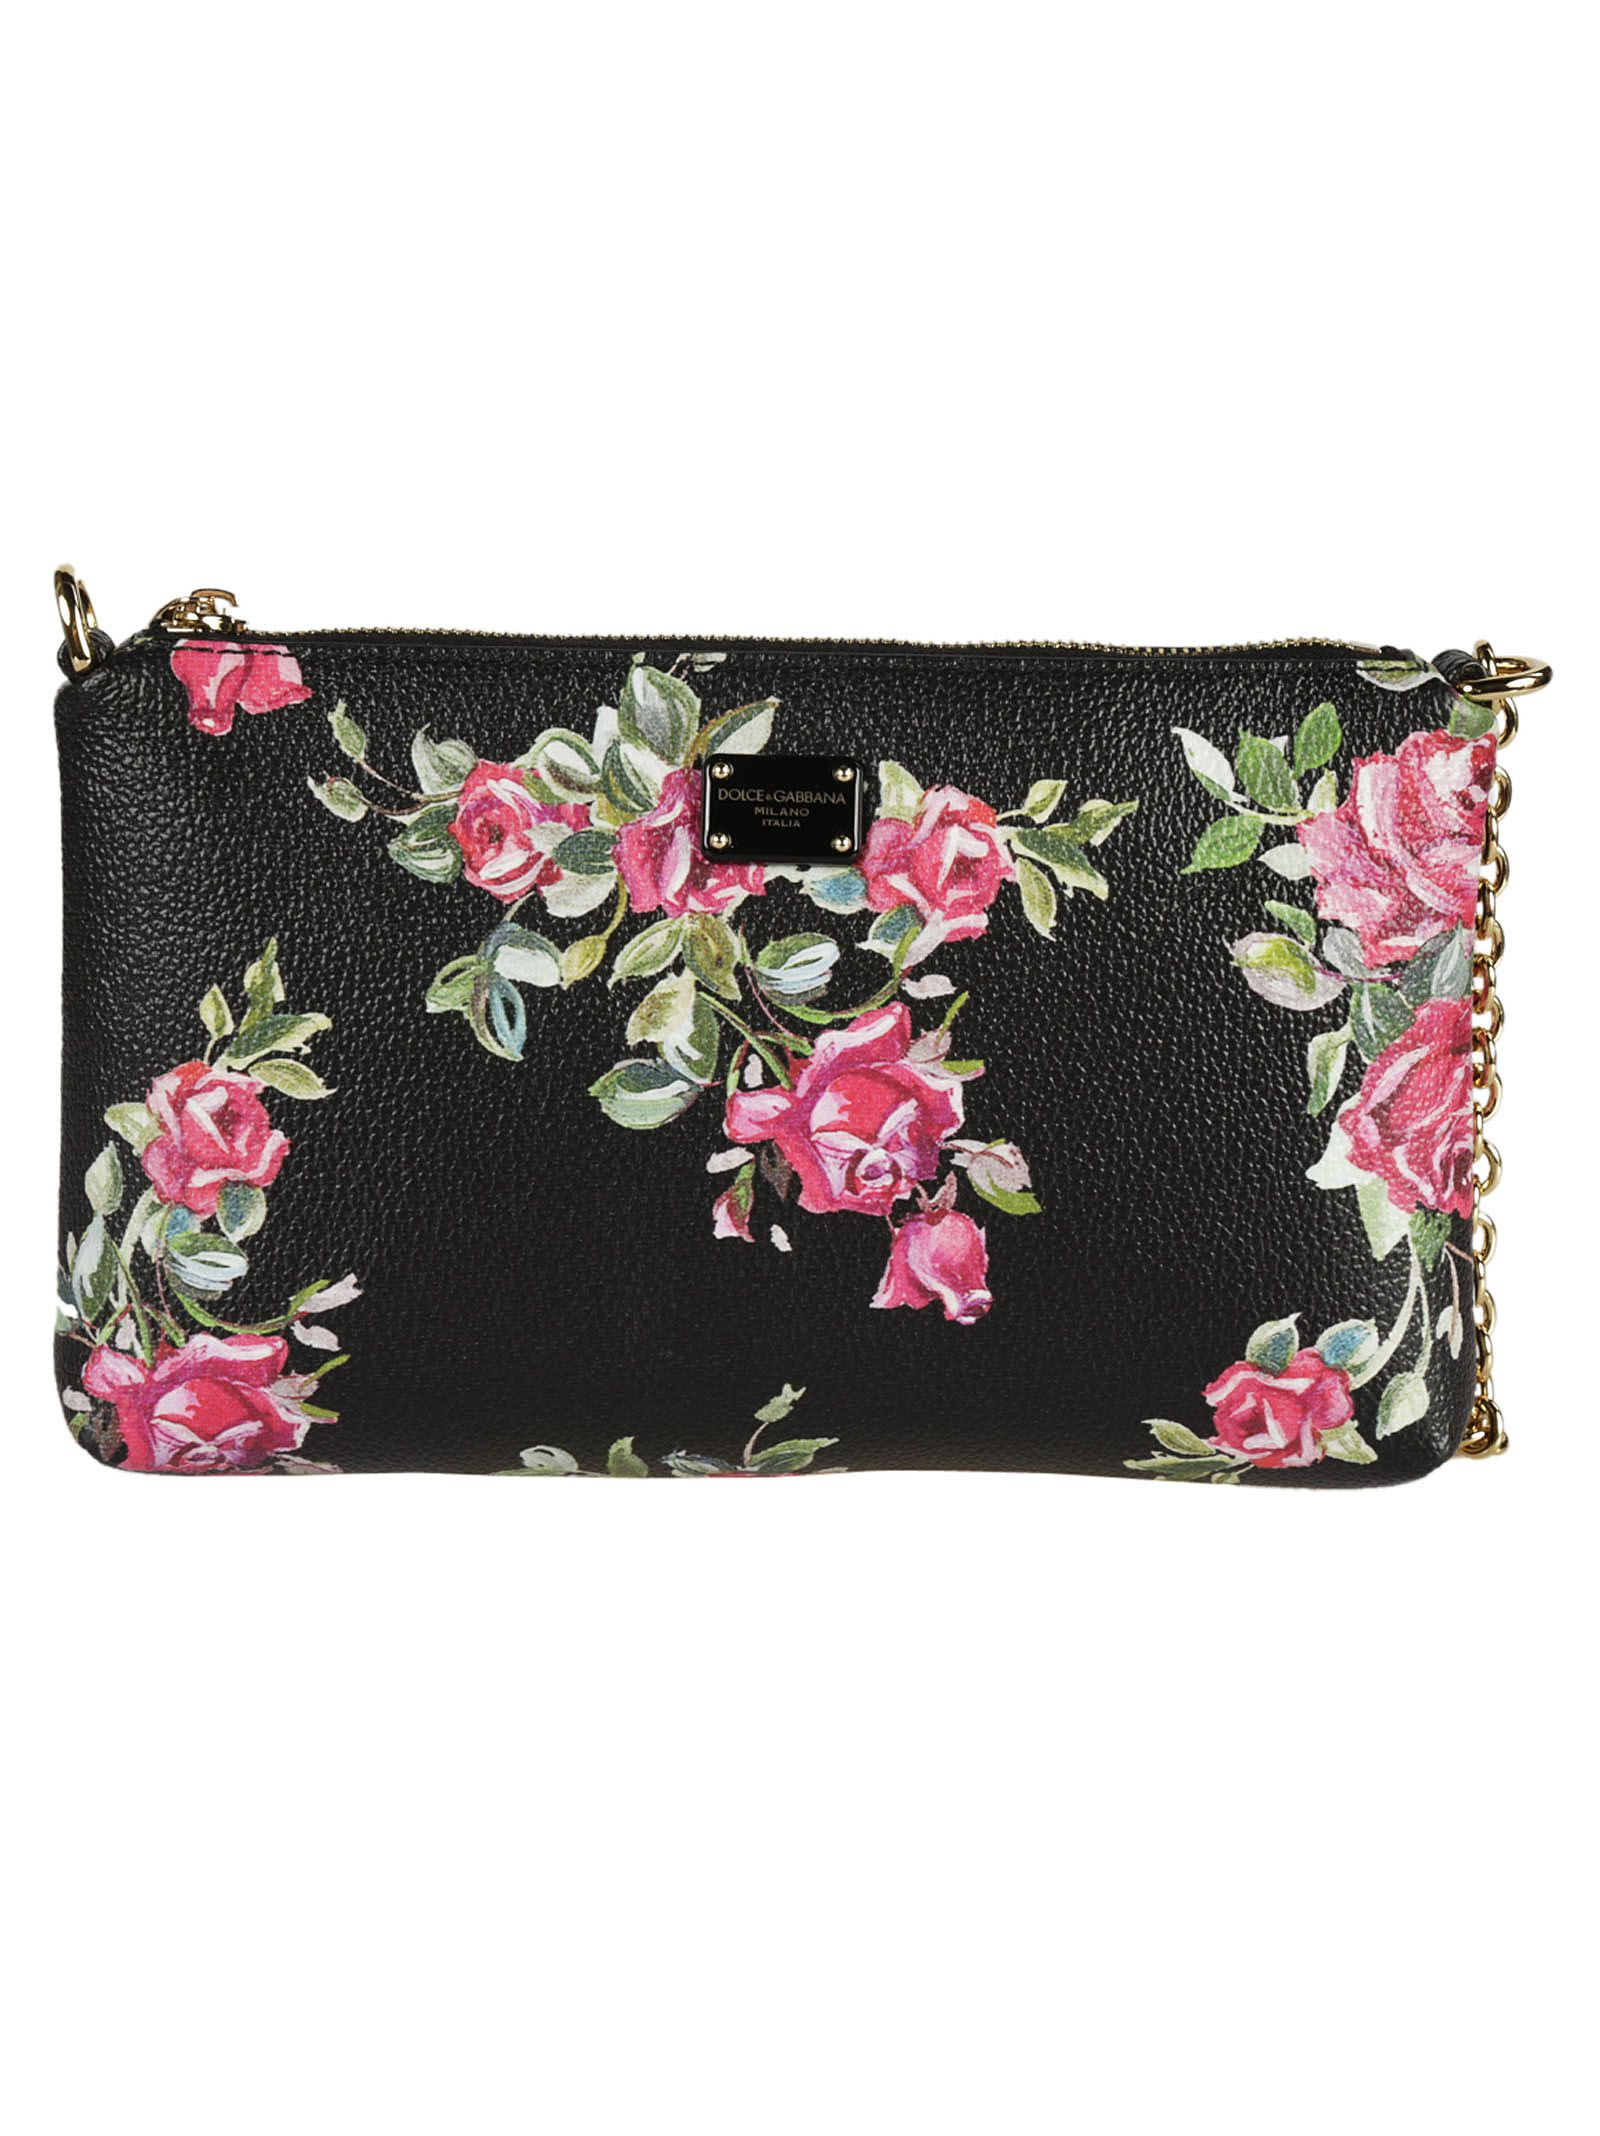 1f0d808b9d05 Dolce   Gabbana Dolce   Gabbana Rose Shoulder Bag - Black - 6303776 ...